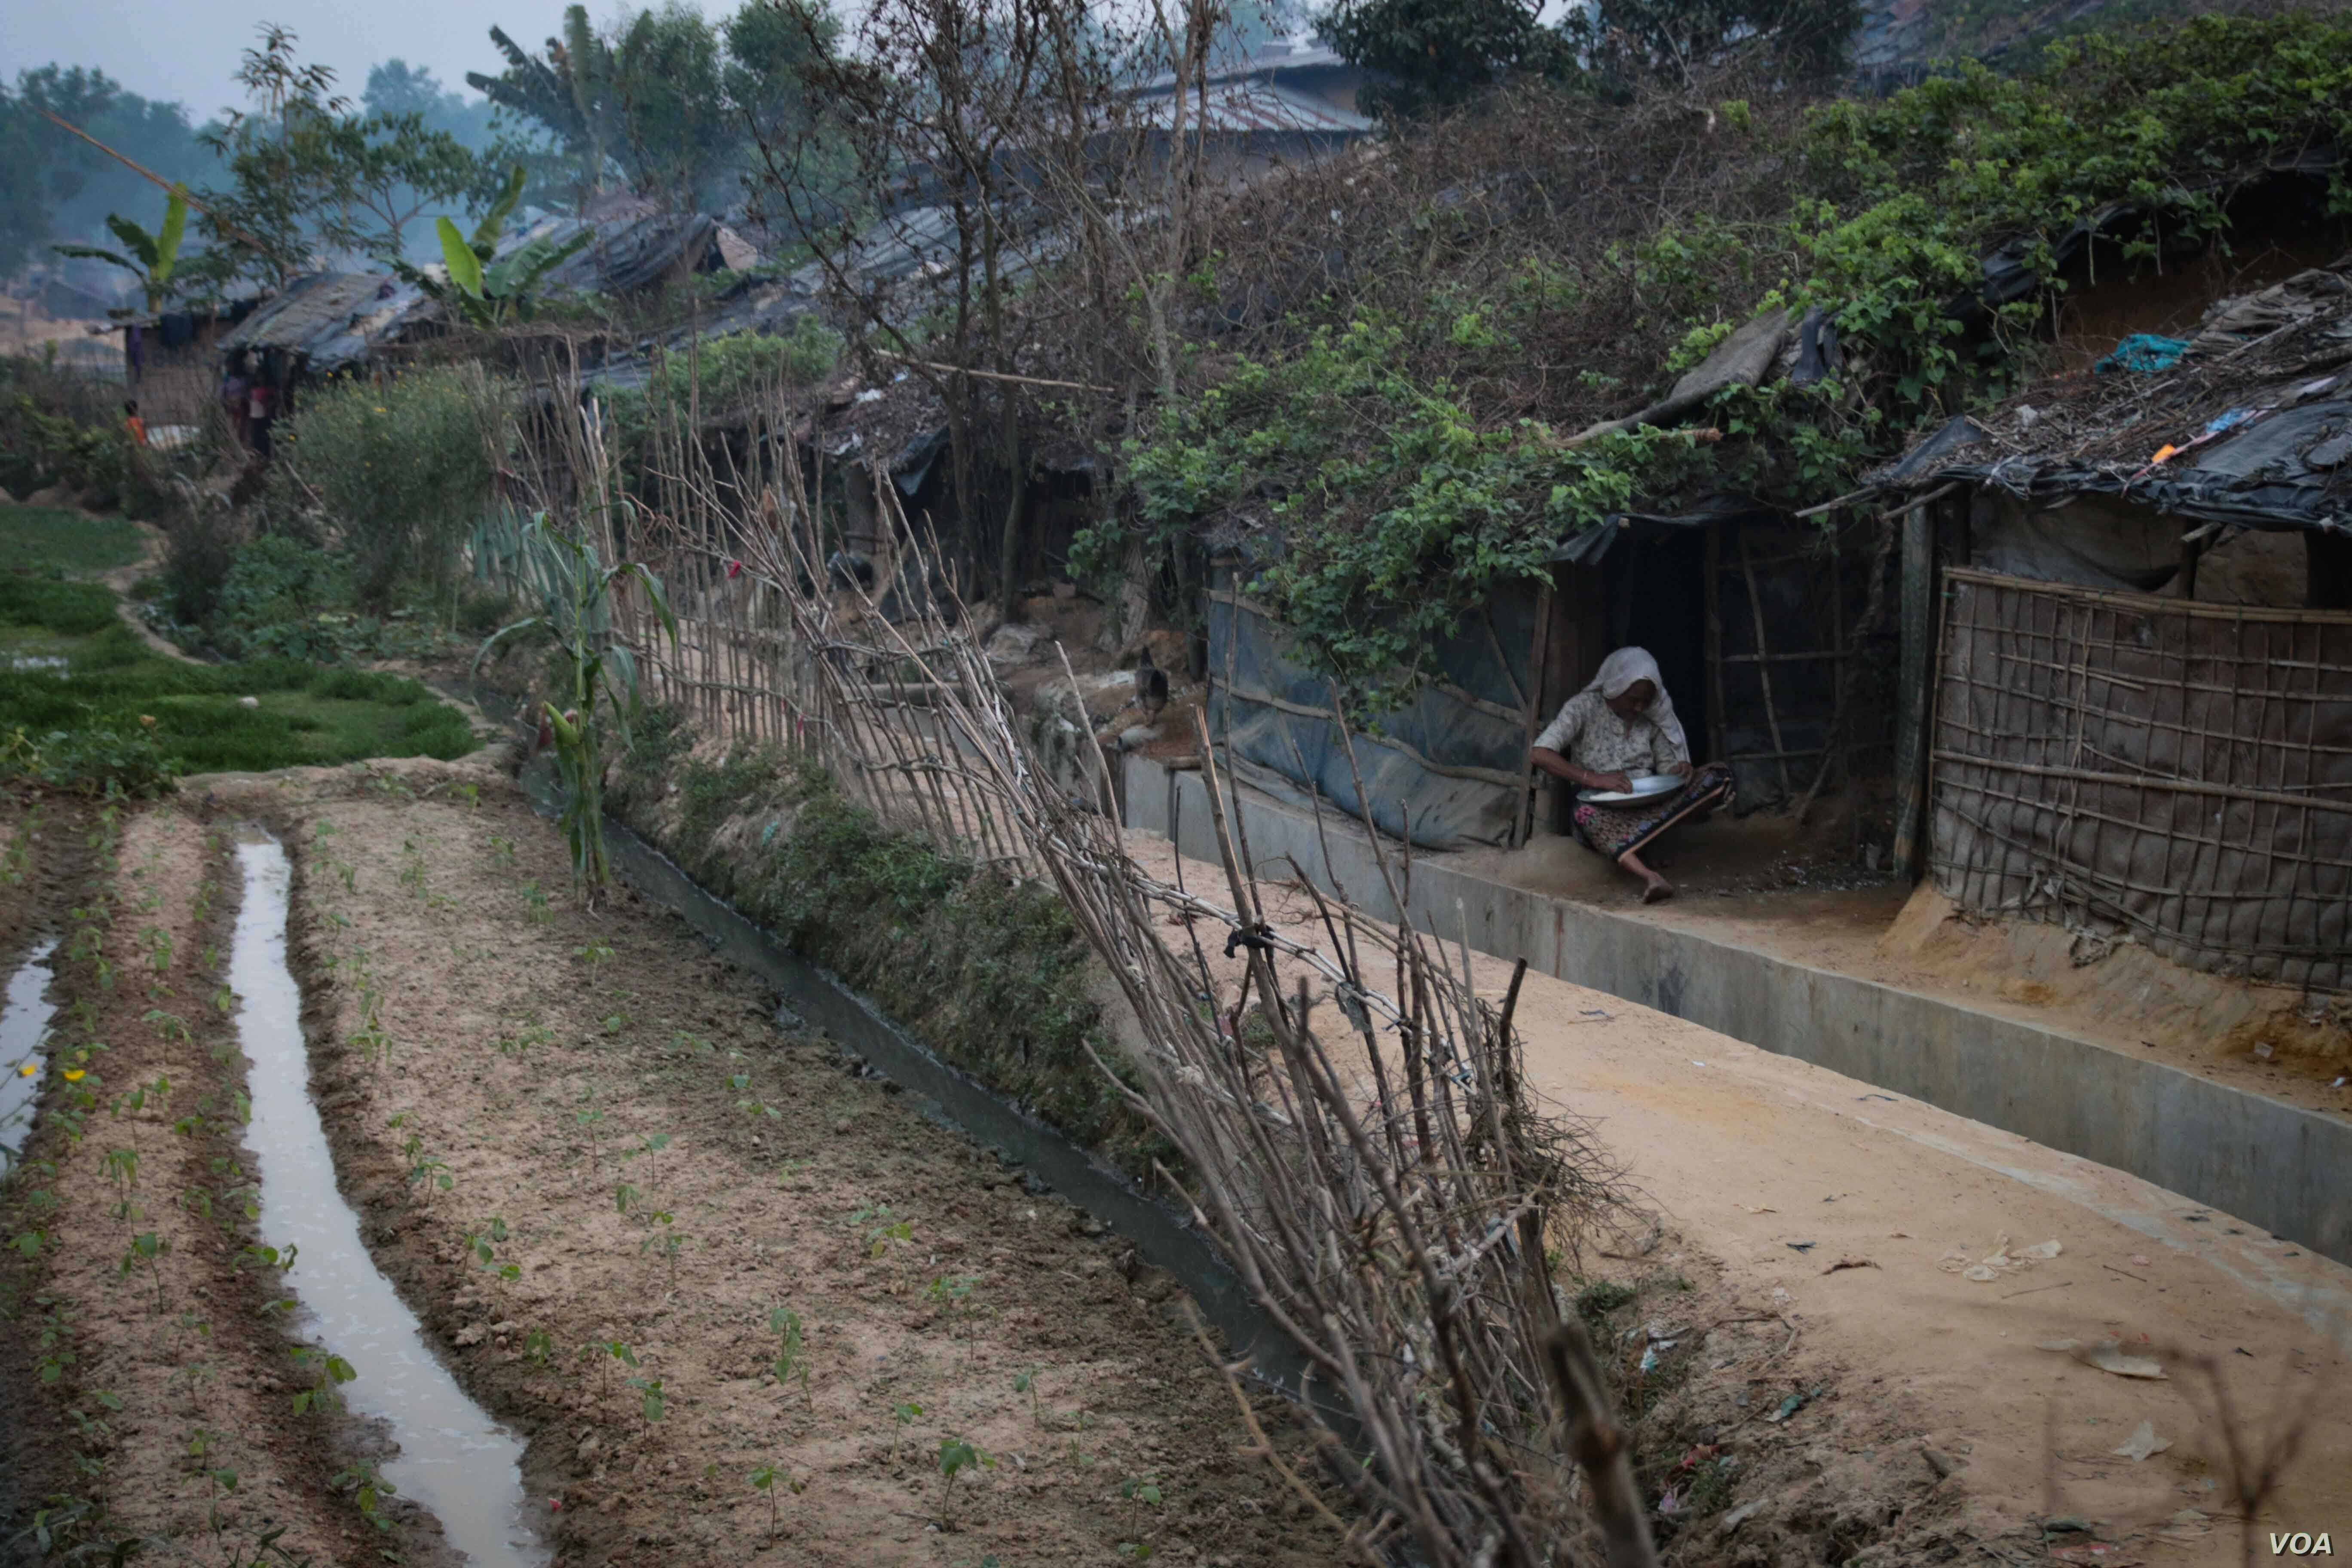 The different parts of Kutapalong camp, in Bangladesh, reflects the ongoing persecution faced by the Rohingya. This part of the camp has been established for many years, while other parts are being newly developed by fresh arrivals.